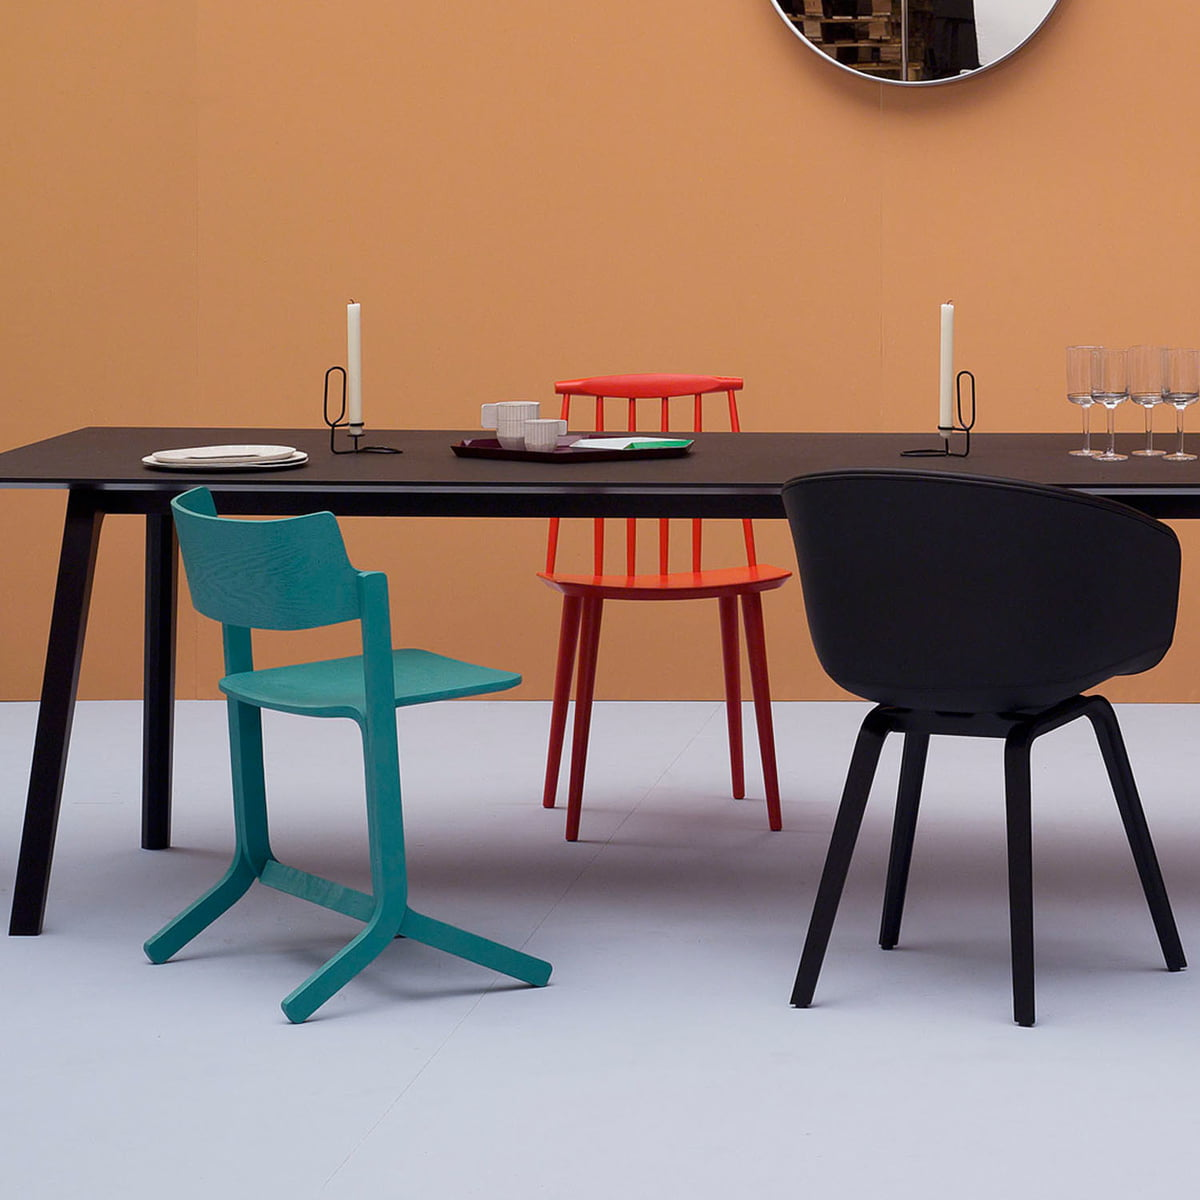 office chair conference dining scandinavian design aac22. Hay - J77 Chair Office Conference Dining Scandinavian Design Aac22